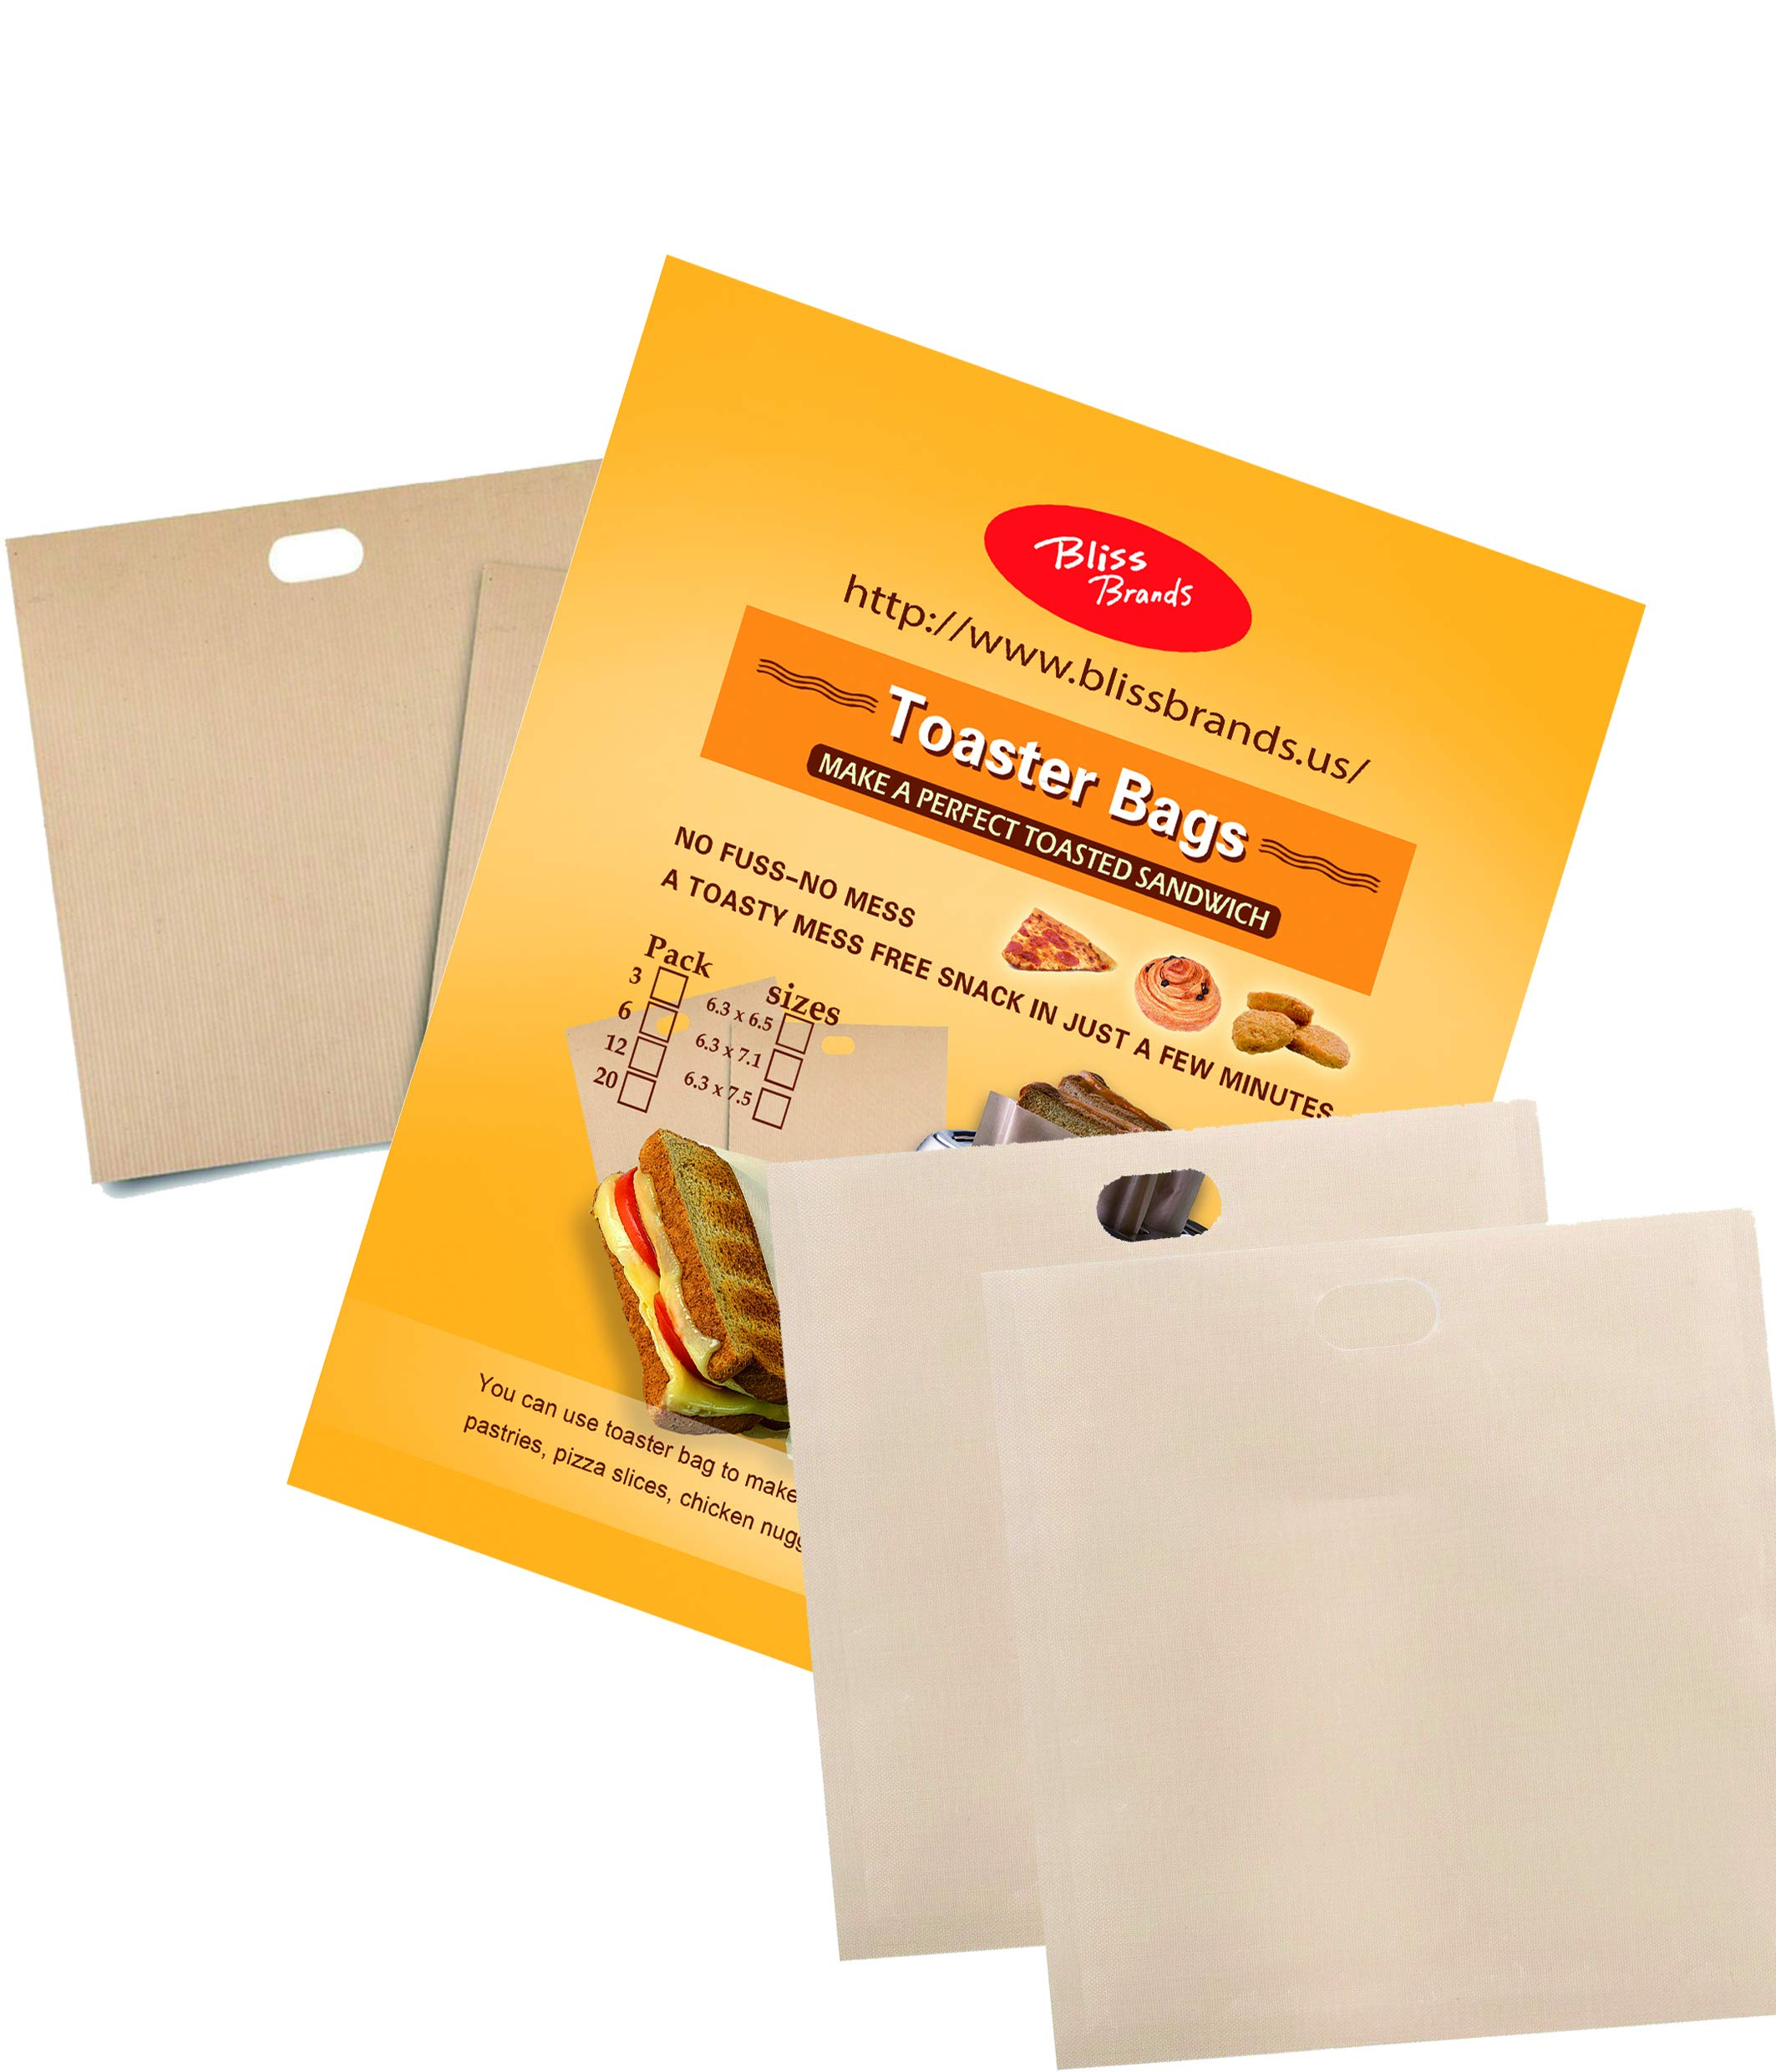 Reusable Toaster Bags: Non-Stick Sandwich Pouch 12 Pack - FDA Approved, BPA & Gluten Free Sleeve - Great for Grilled Cheese, Chicken Nuggets, Pizza Slices, Sausages, Panini, Pastries, Sandwiches